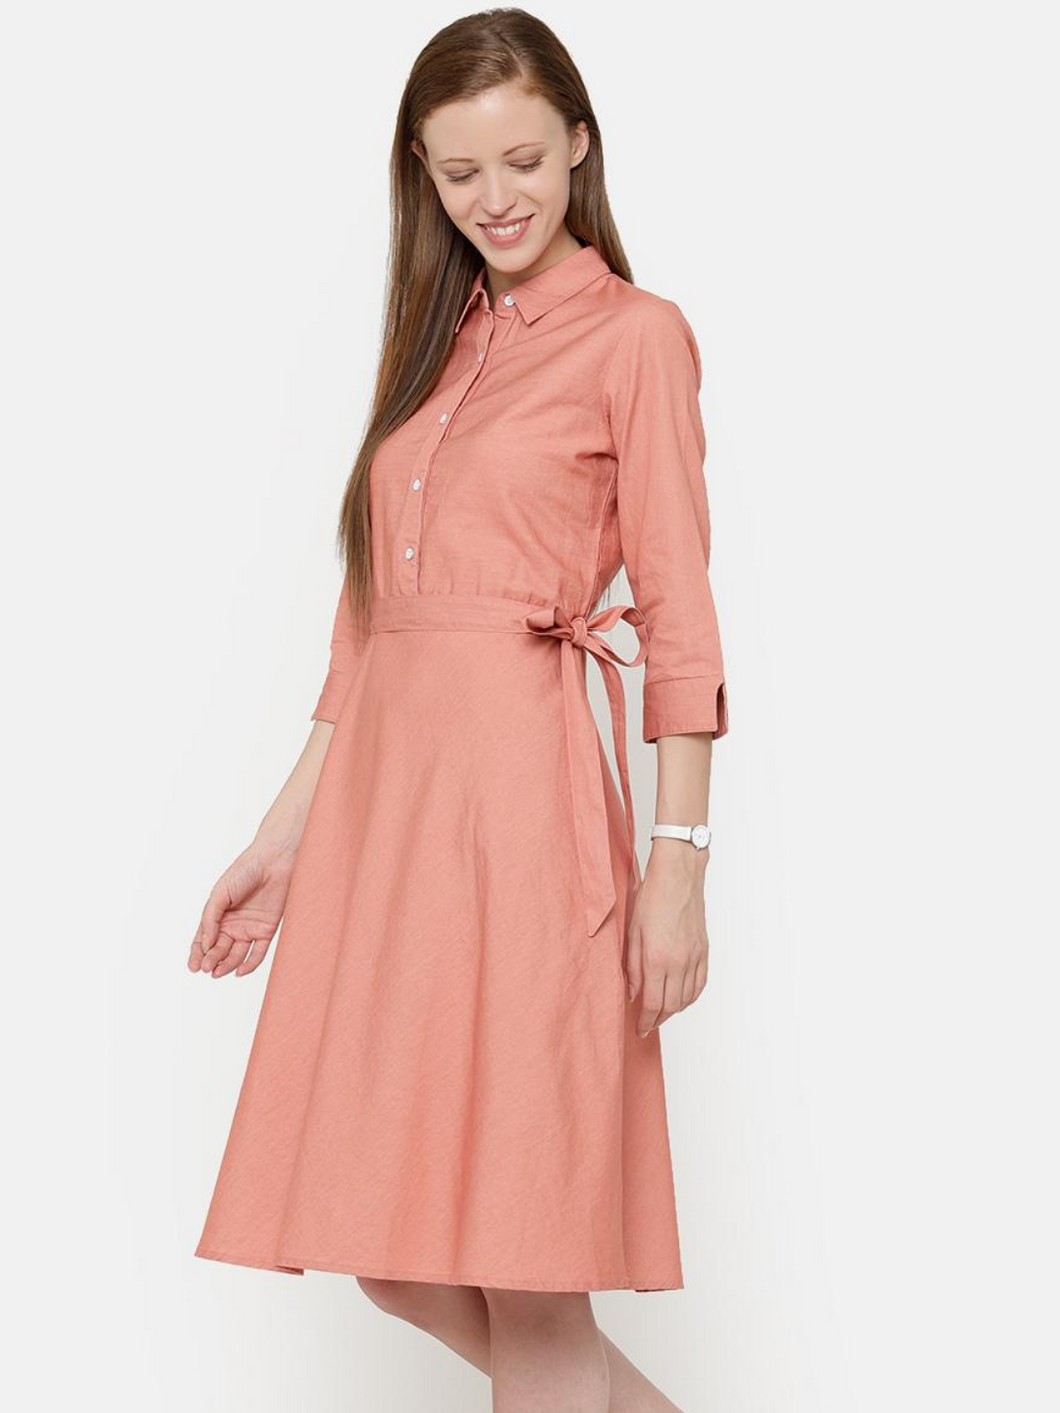 The Work Label - Pink Pocket Shirt Dress -  Women's western work-wear in India